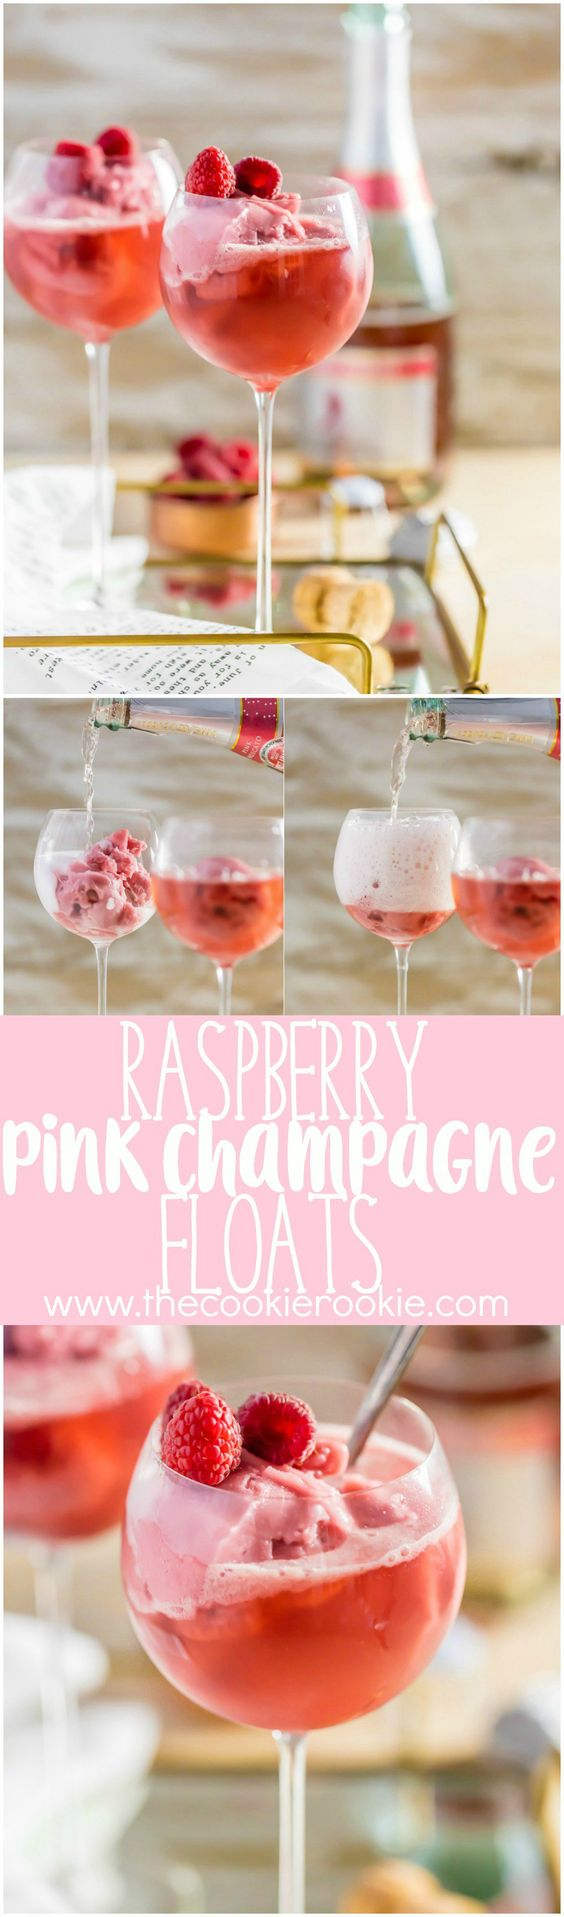 Raspberry Pink Champagne Floats, made with pink champagne and raspberry sorbet are the perfect Valentine's treat! Sorbet Mimosas are perfect for New Years Eve, Valentine's Day, baby showers, or wedding showers! Beautiful, EASY, and delicious!: